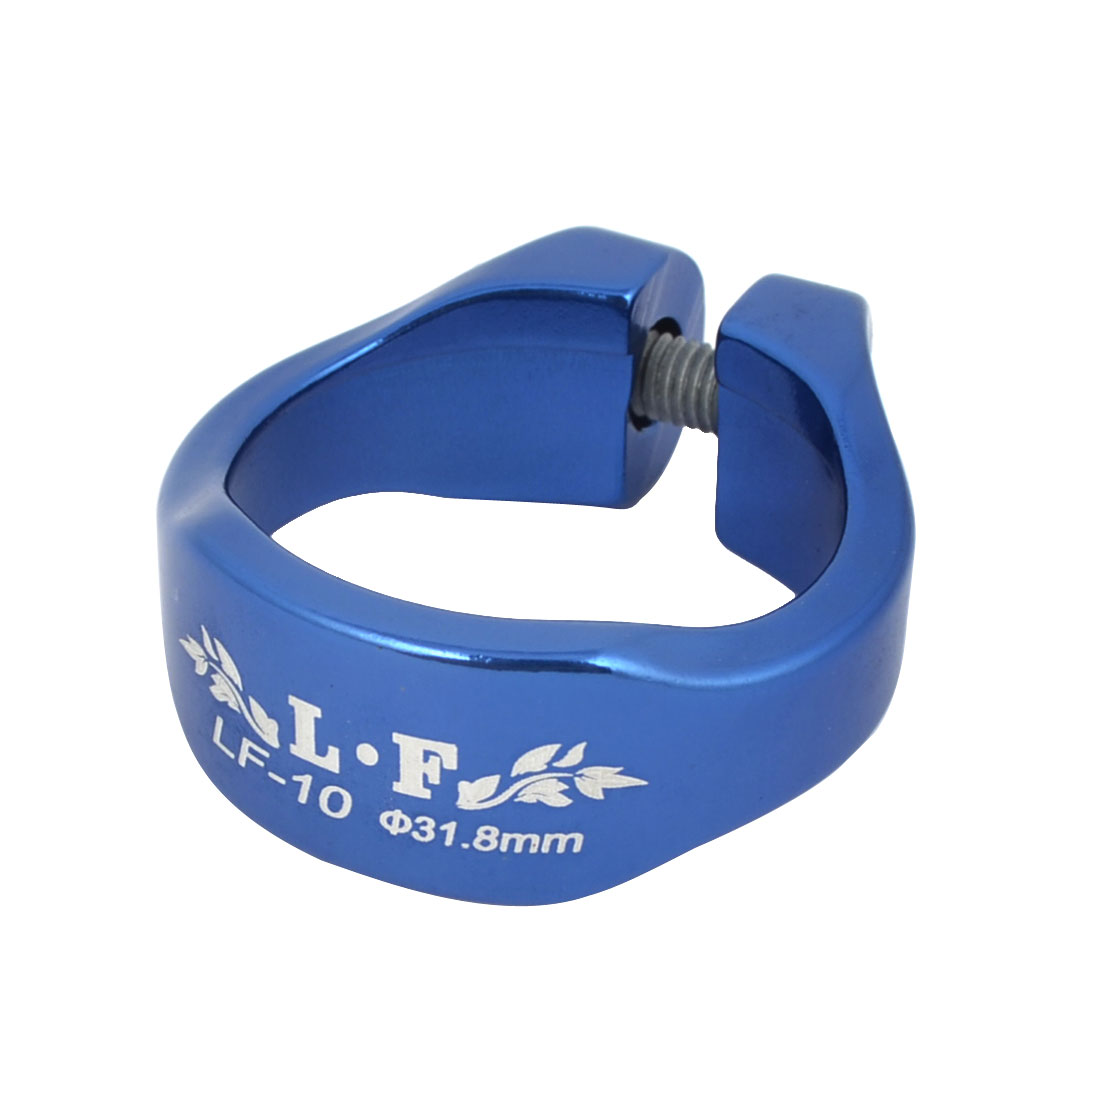 LF Authorized Cycling Moutain Bike Bracket Seat Post 31.8mm Adjustable Sit Tube Clamp Clip Holder Blue